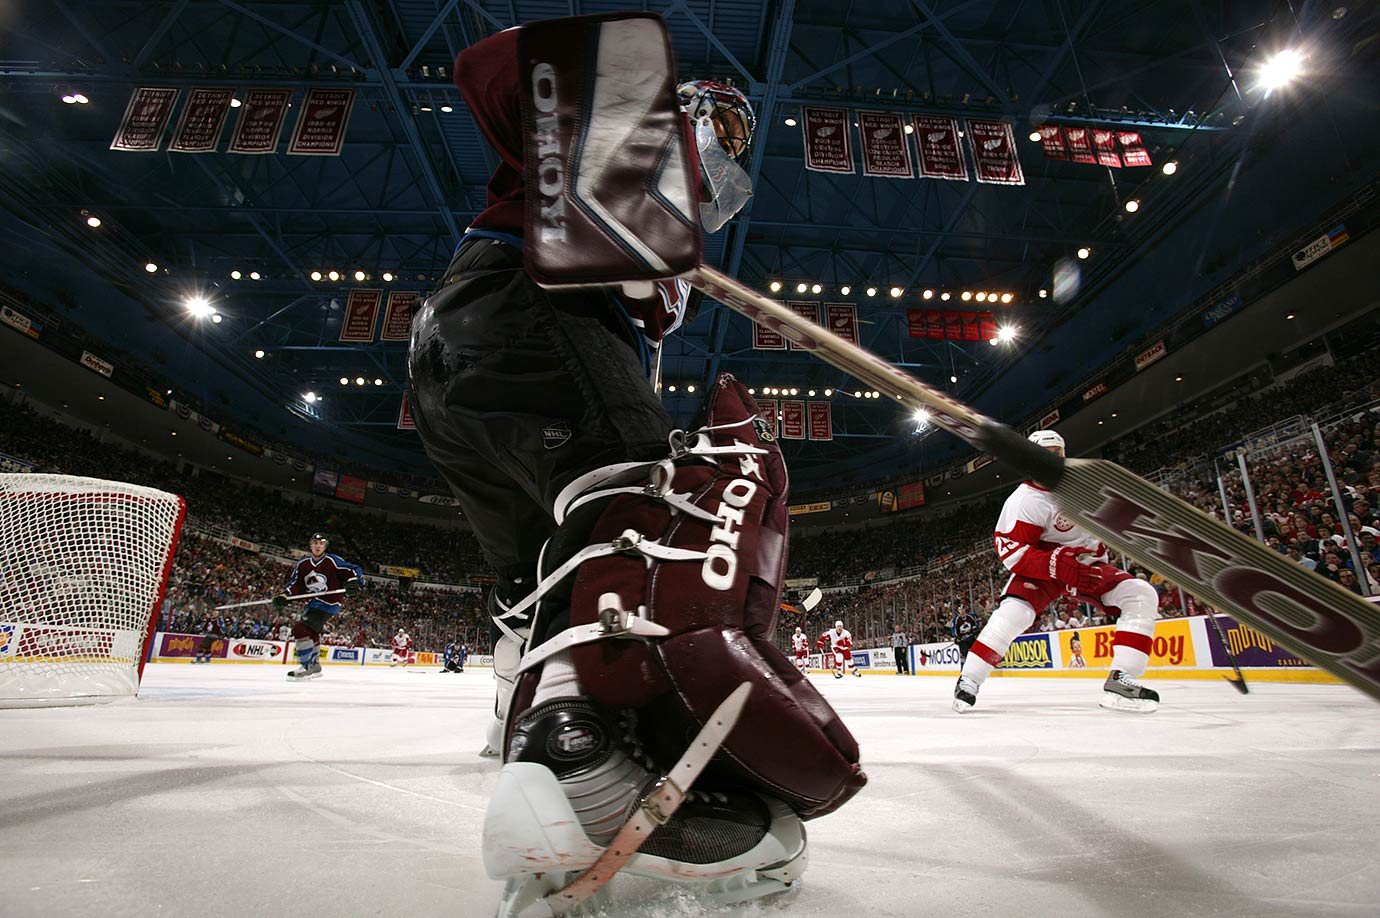 March 15, 2003 — Avalanche vs. Red Wings